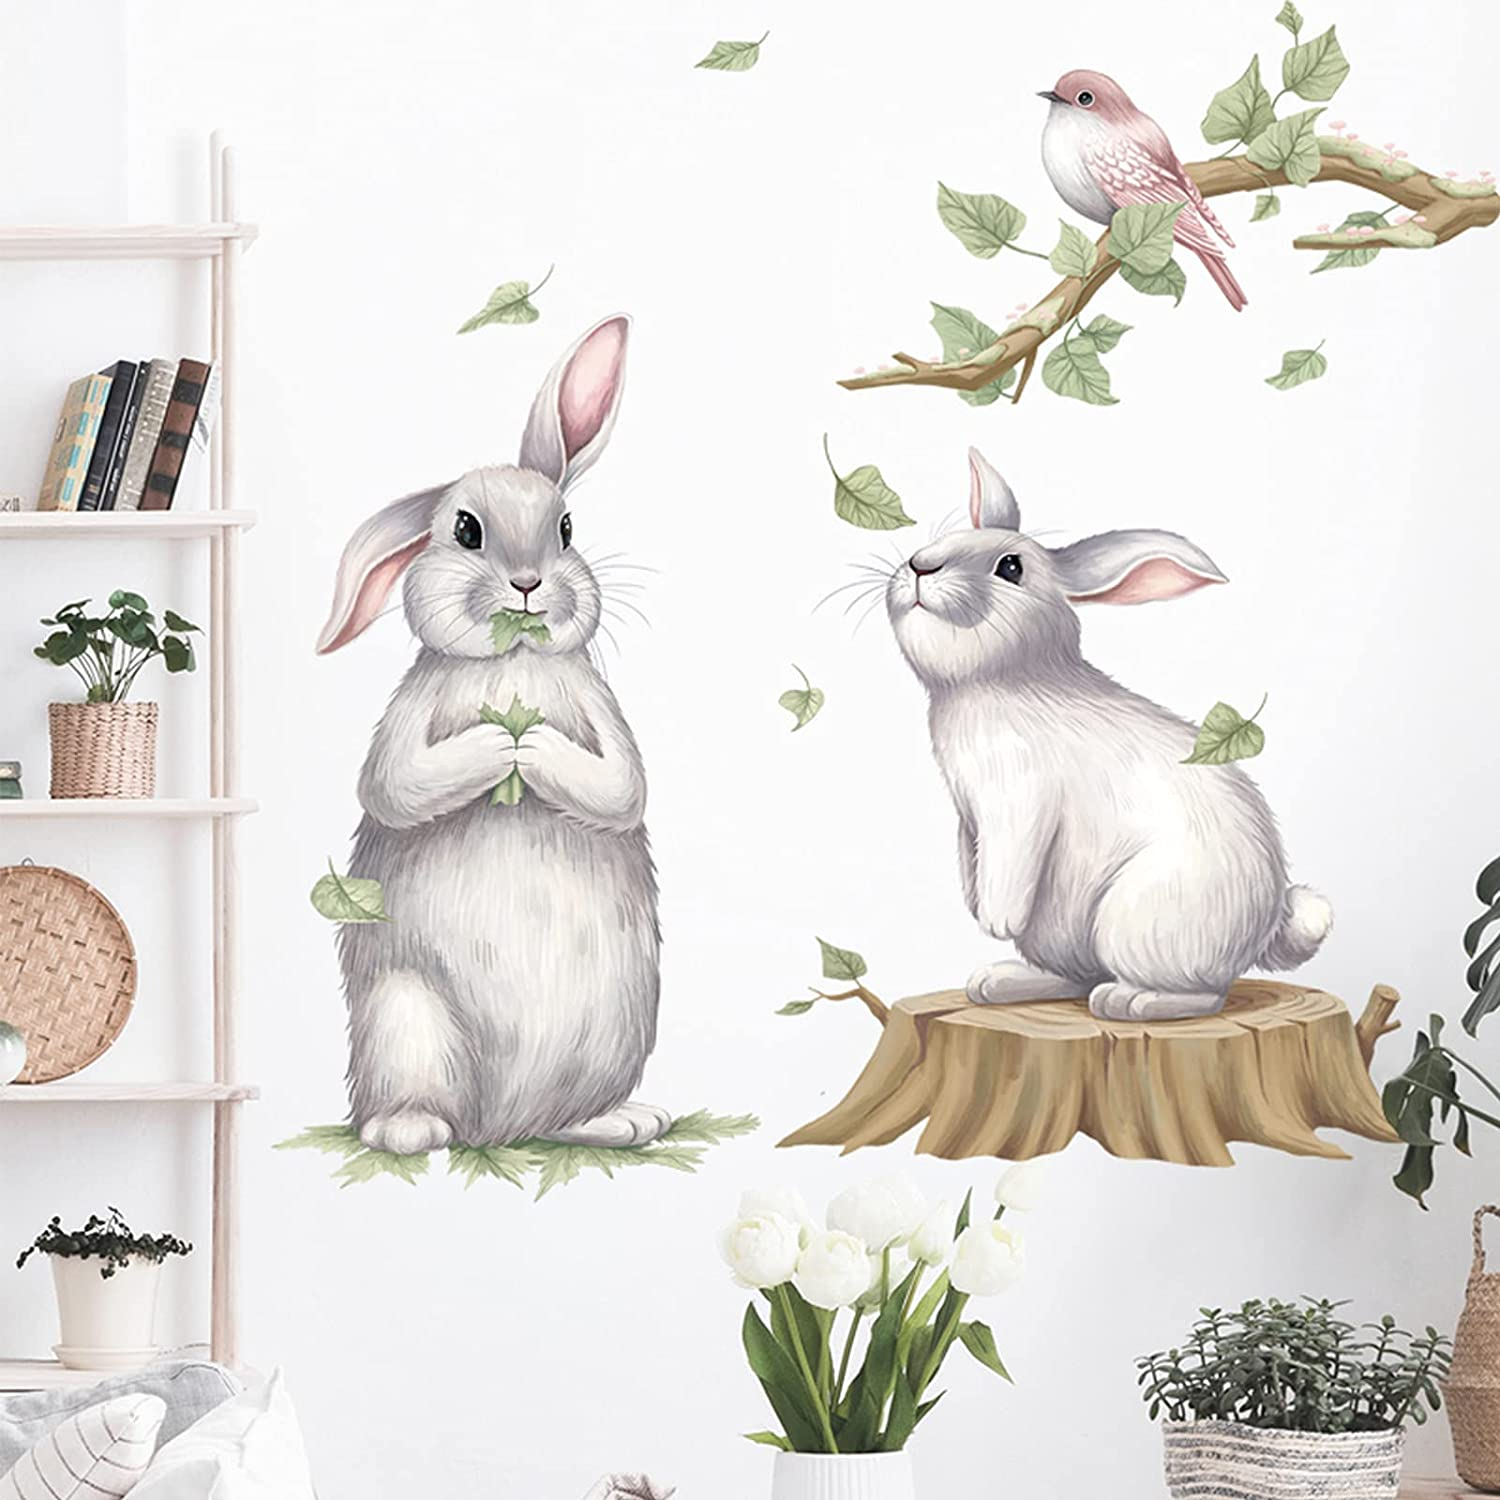 2 Cute Rabbit Wall Stickers with Bird On The Branches Decals, Removable Cartoon Animal Bunny 3D Vinyl Wallpaper Decor, DIY Art Mural for Nursery Baby Bedroom Living Room